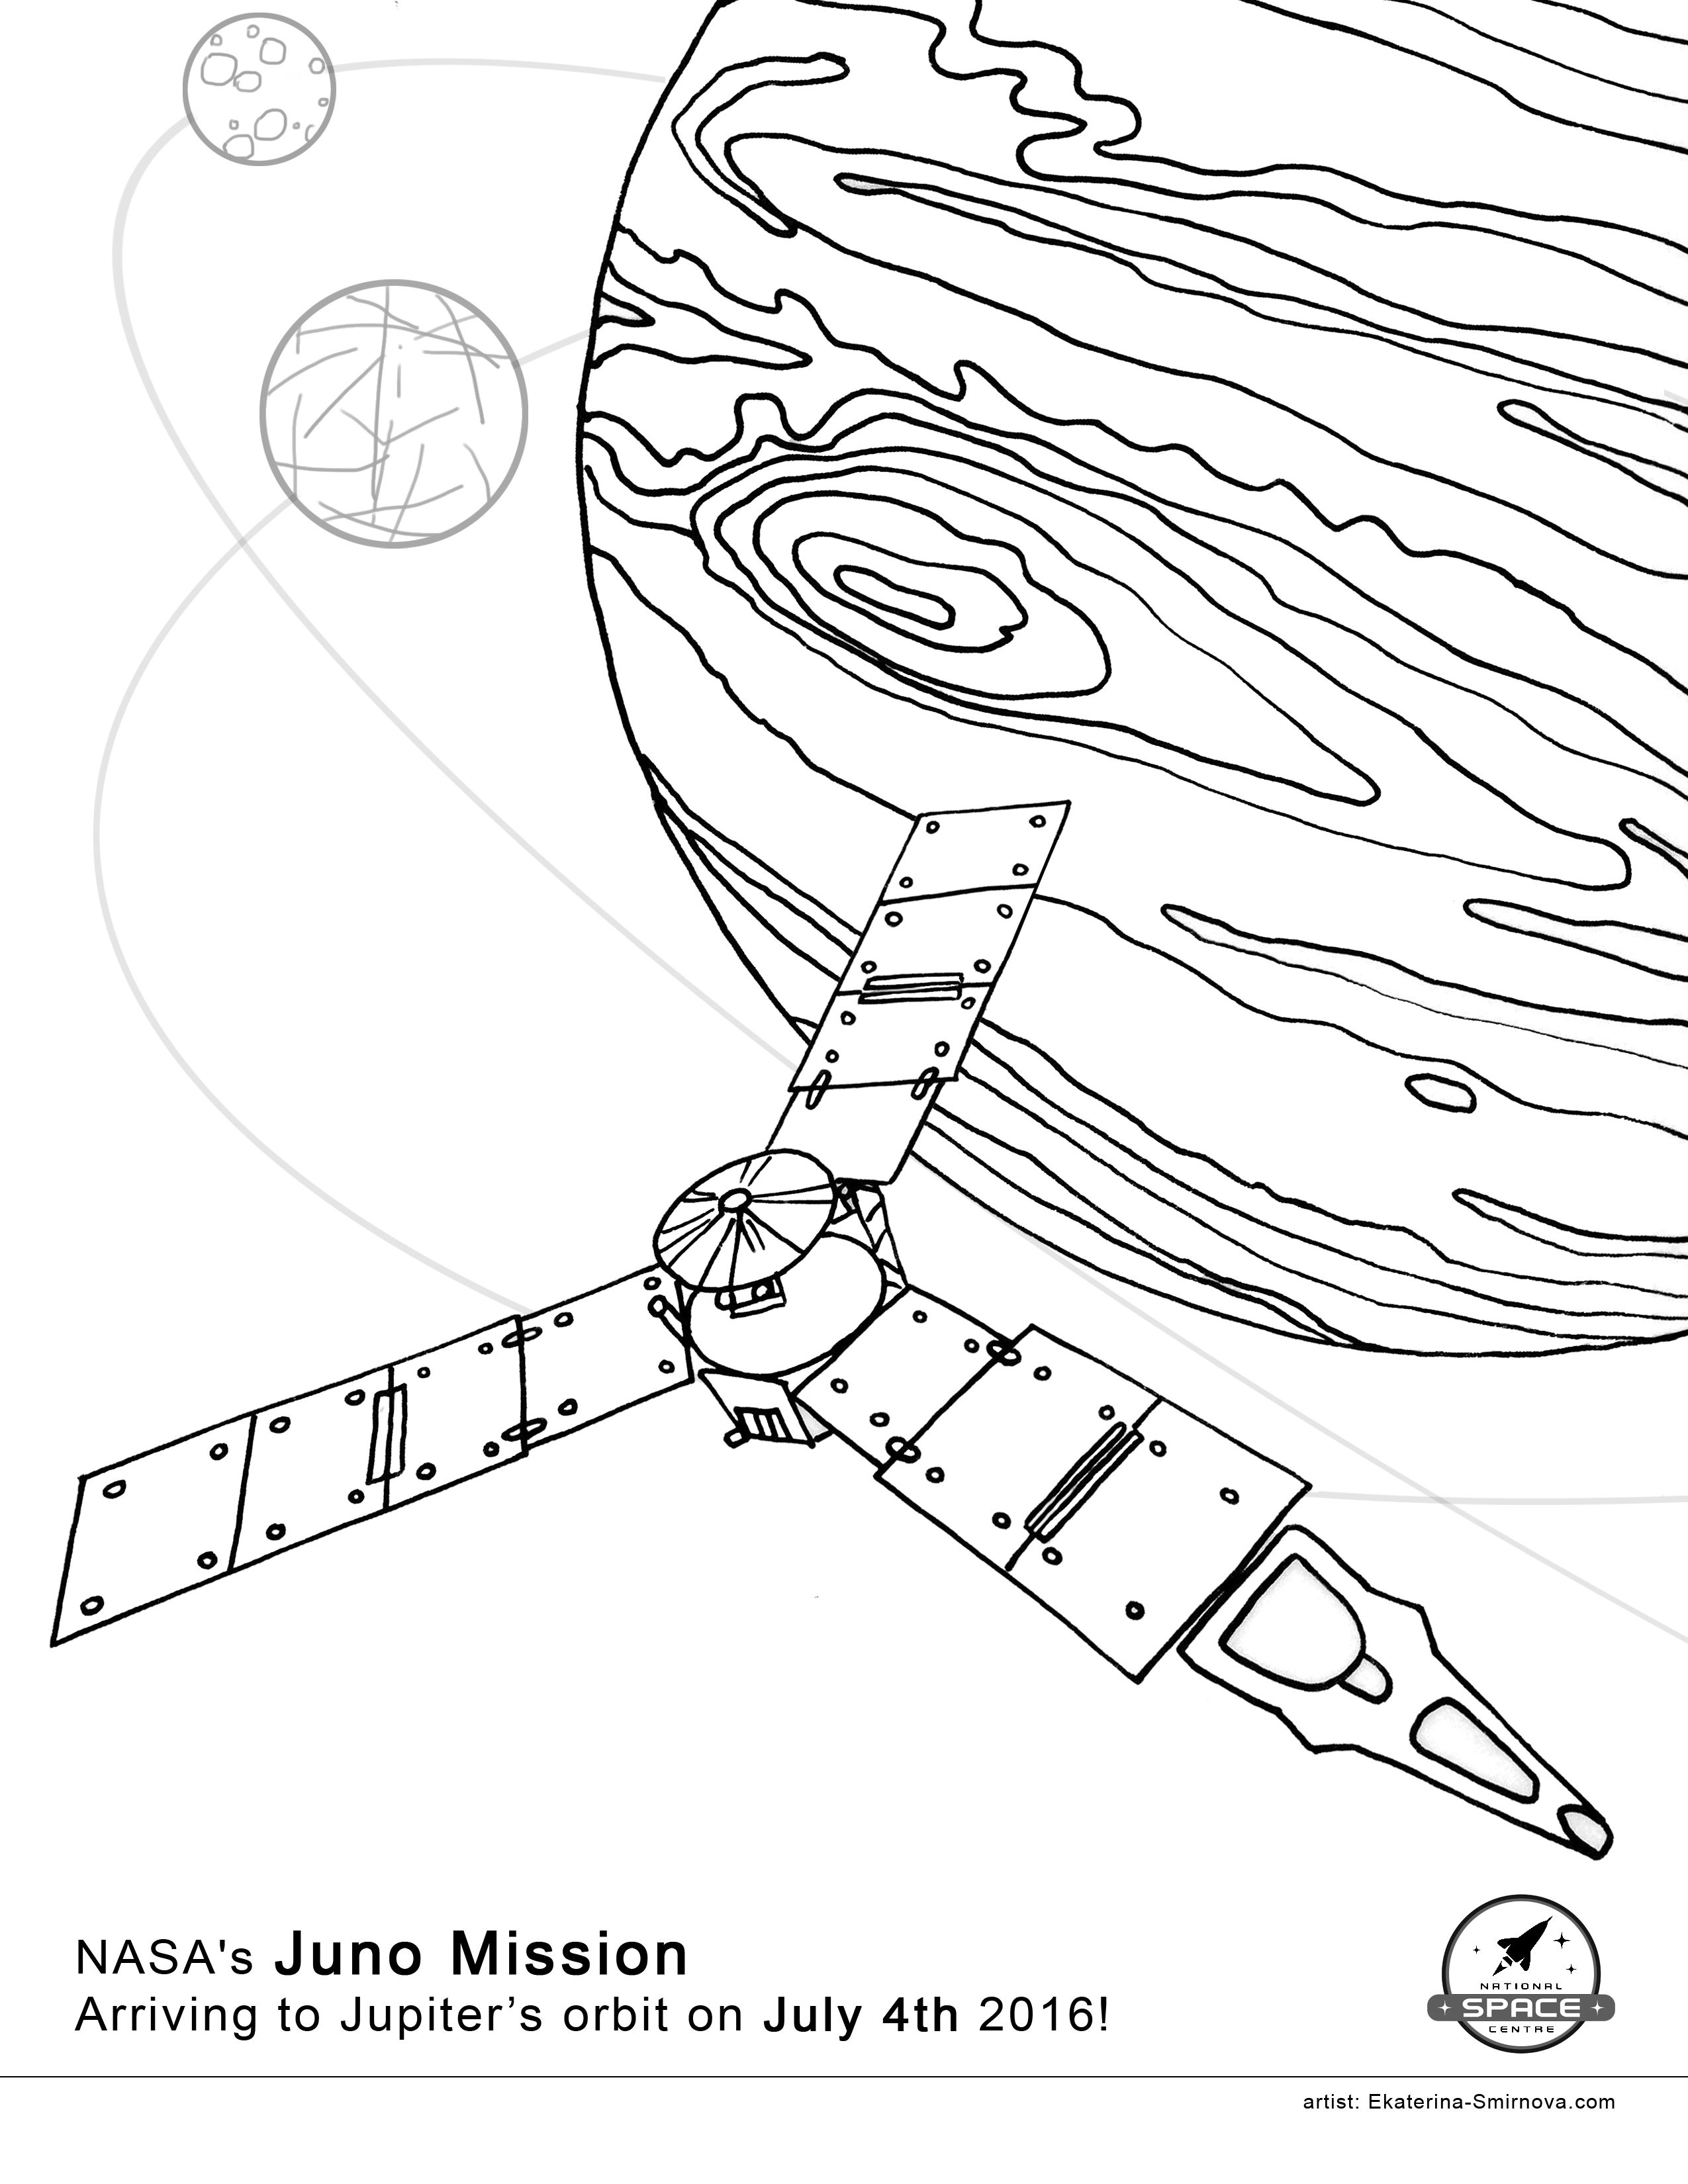 Coloring Book For Space Missions Juno Rosetta Cassini Coloring Books Color Space